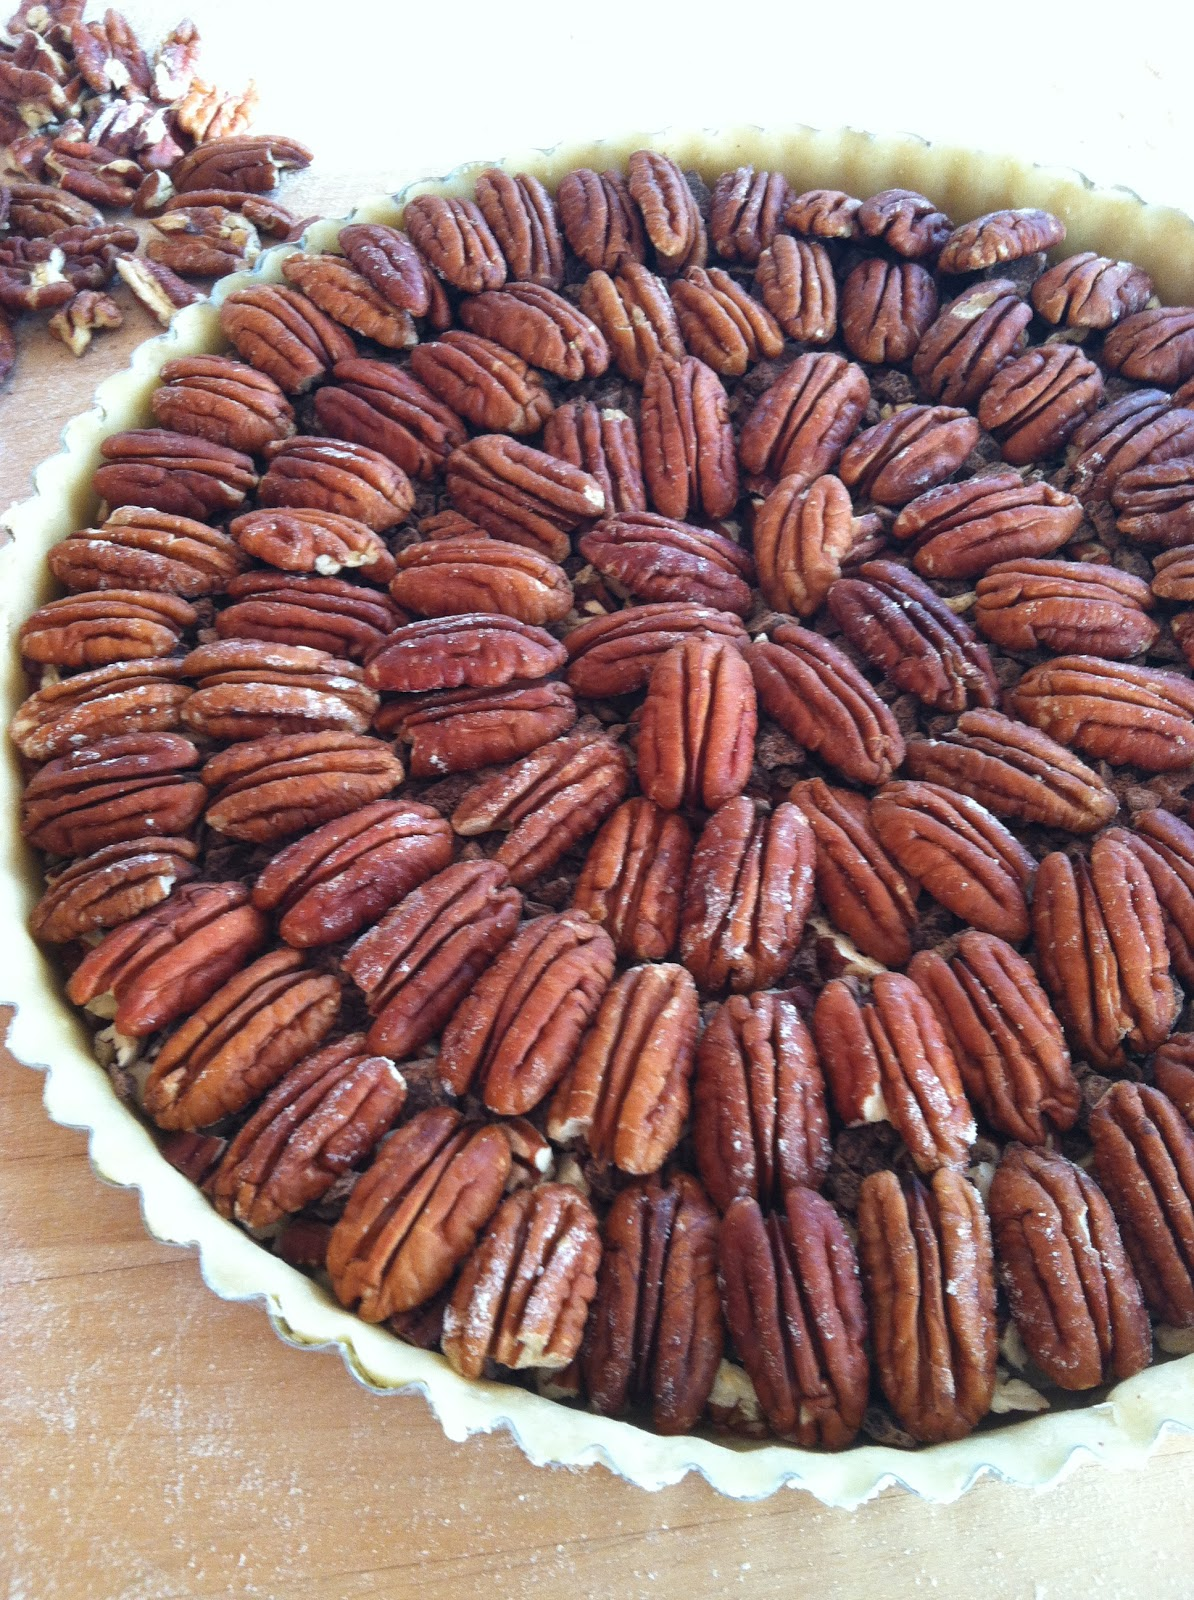 ... to Food: Chocolate Pecan Tart w/ Bourbon Crème Fraîche Whipped Cream